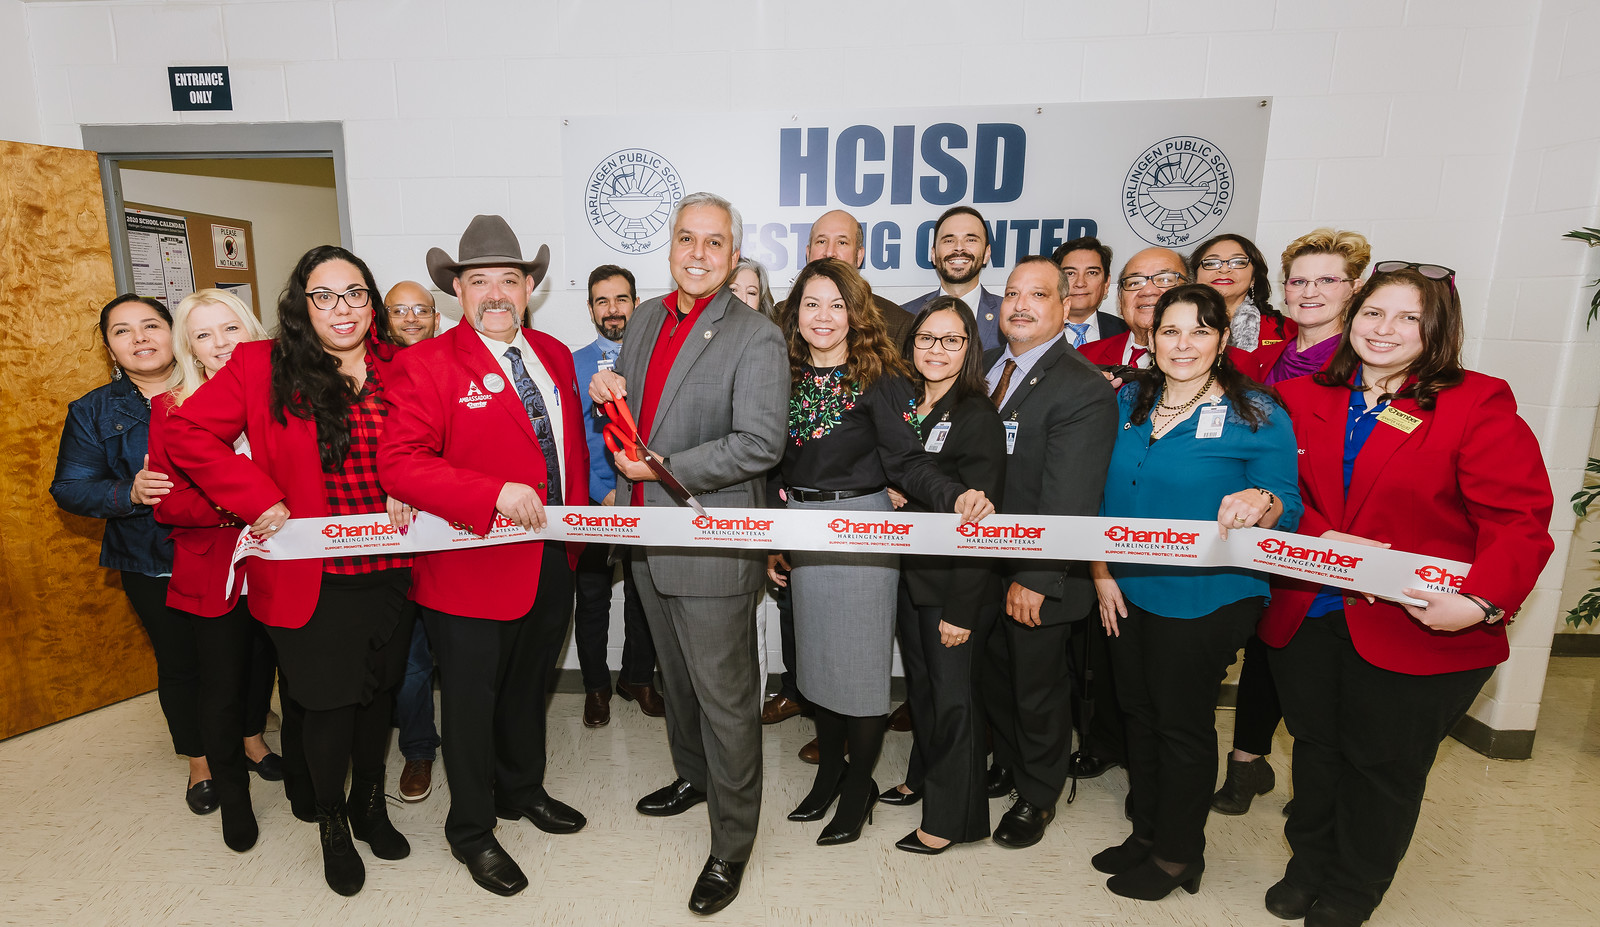 HCISD unveils new testing center